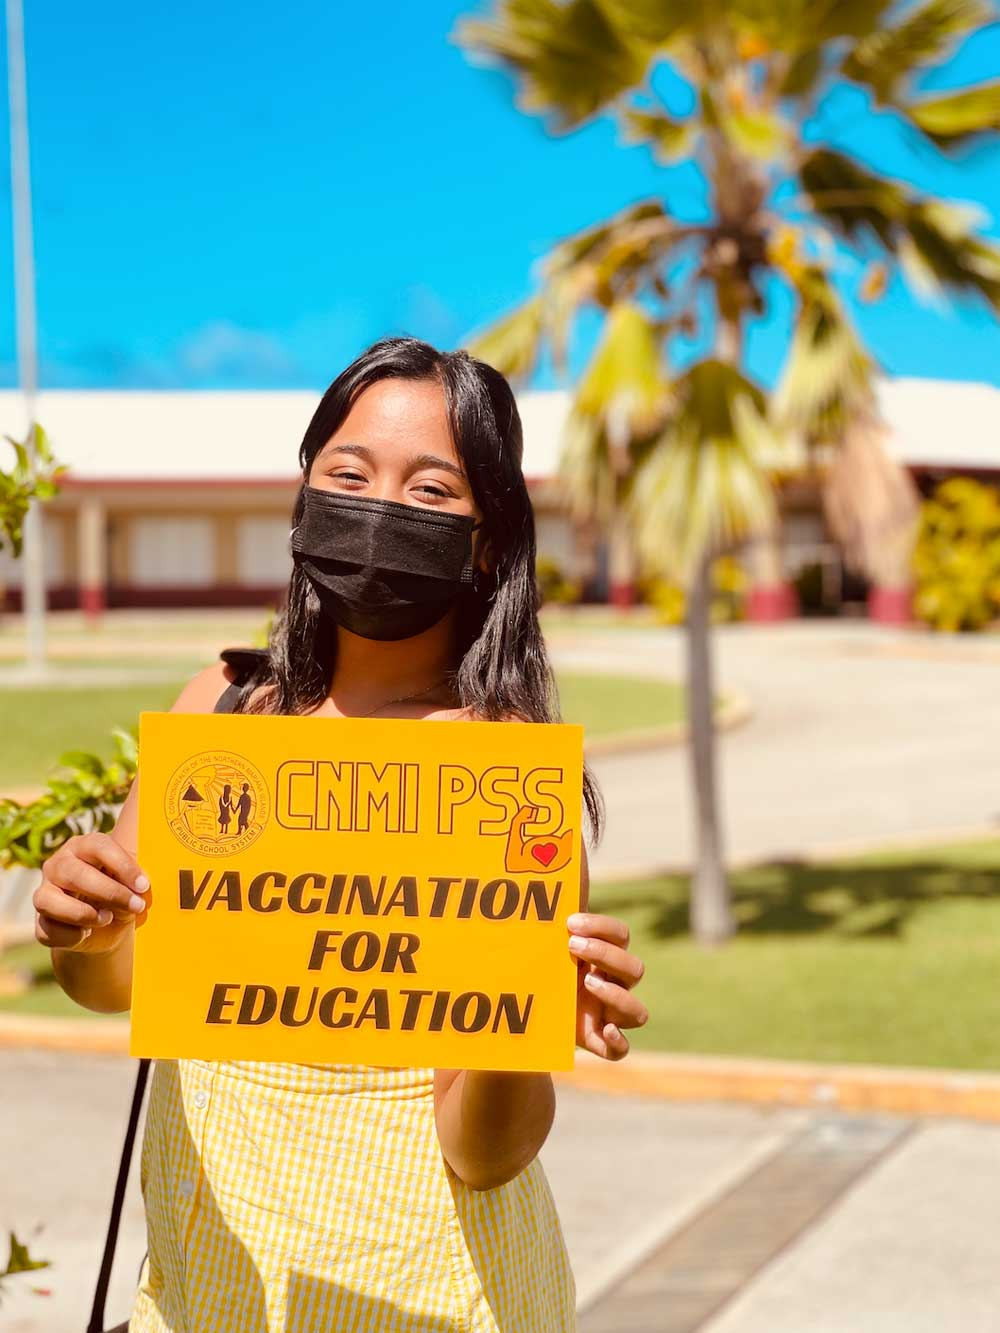 Vaccination for Education